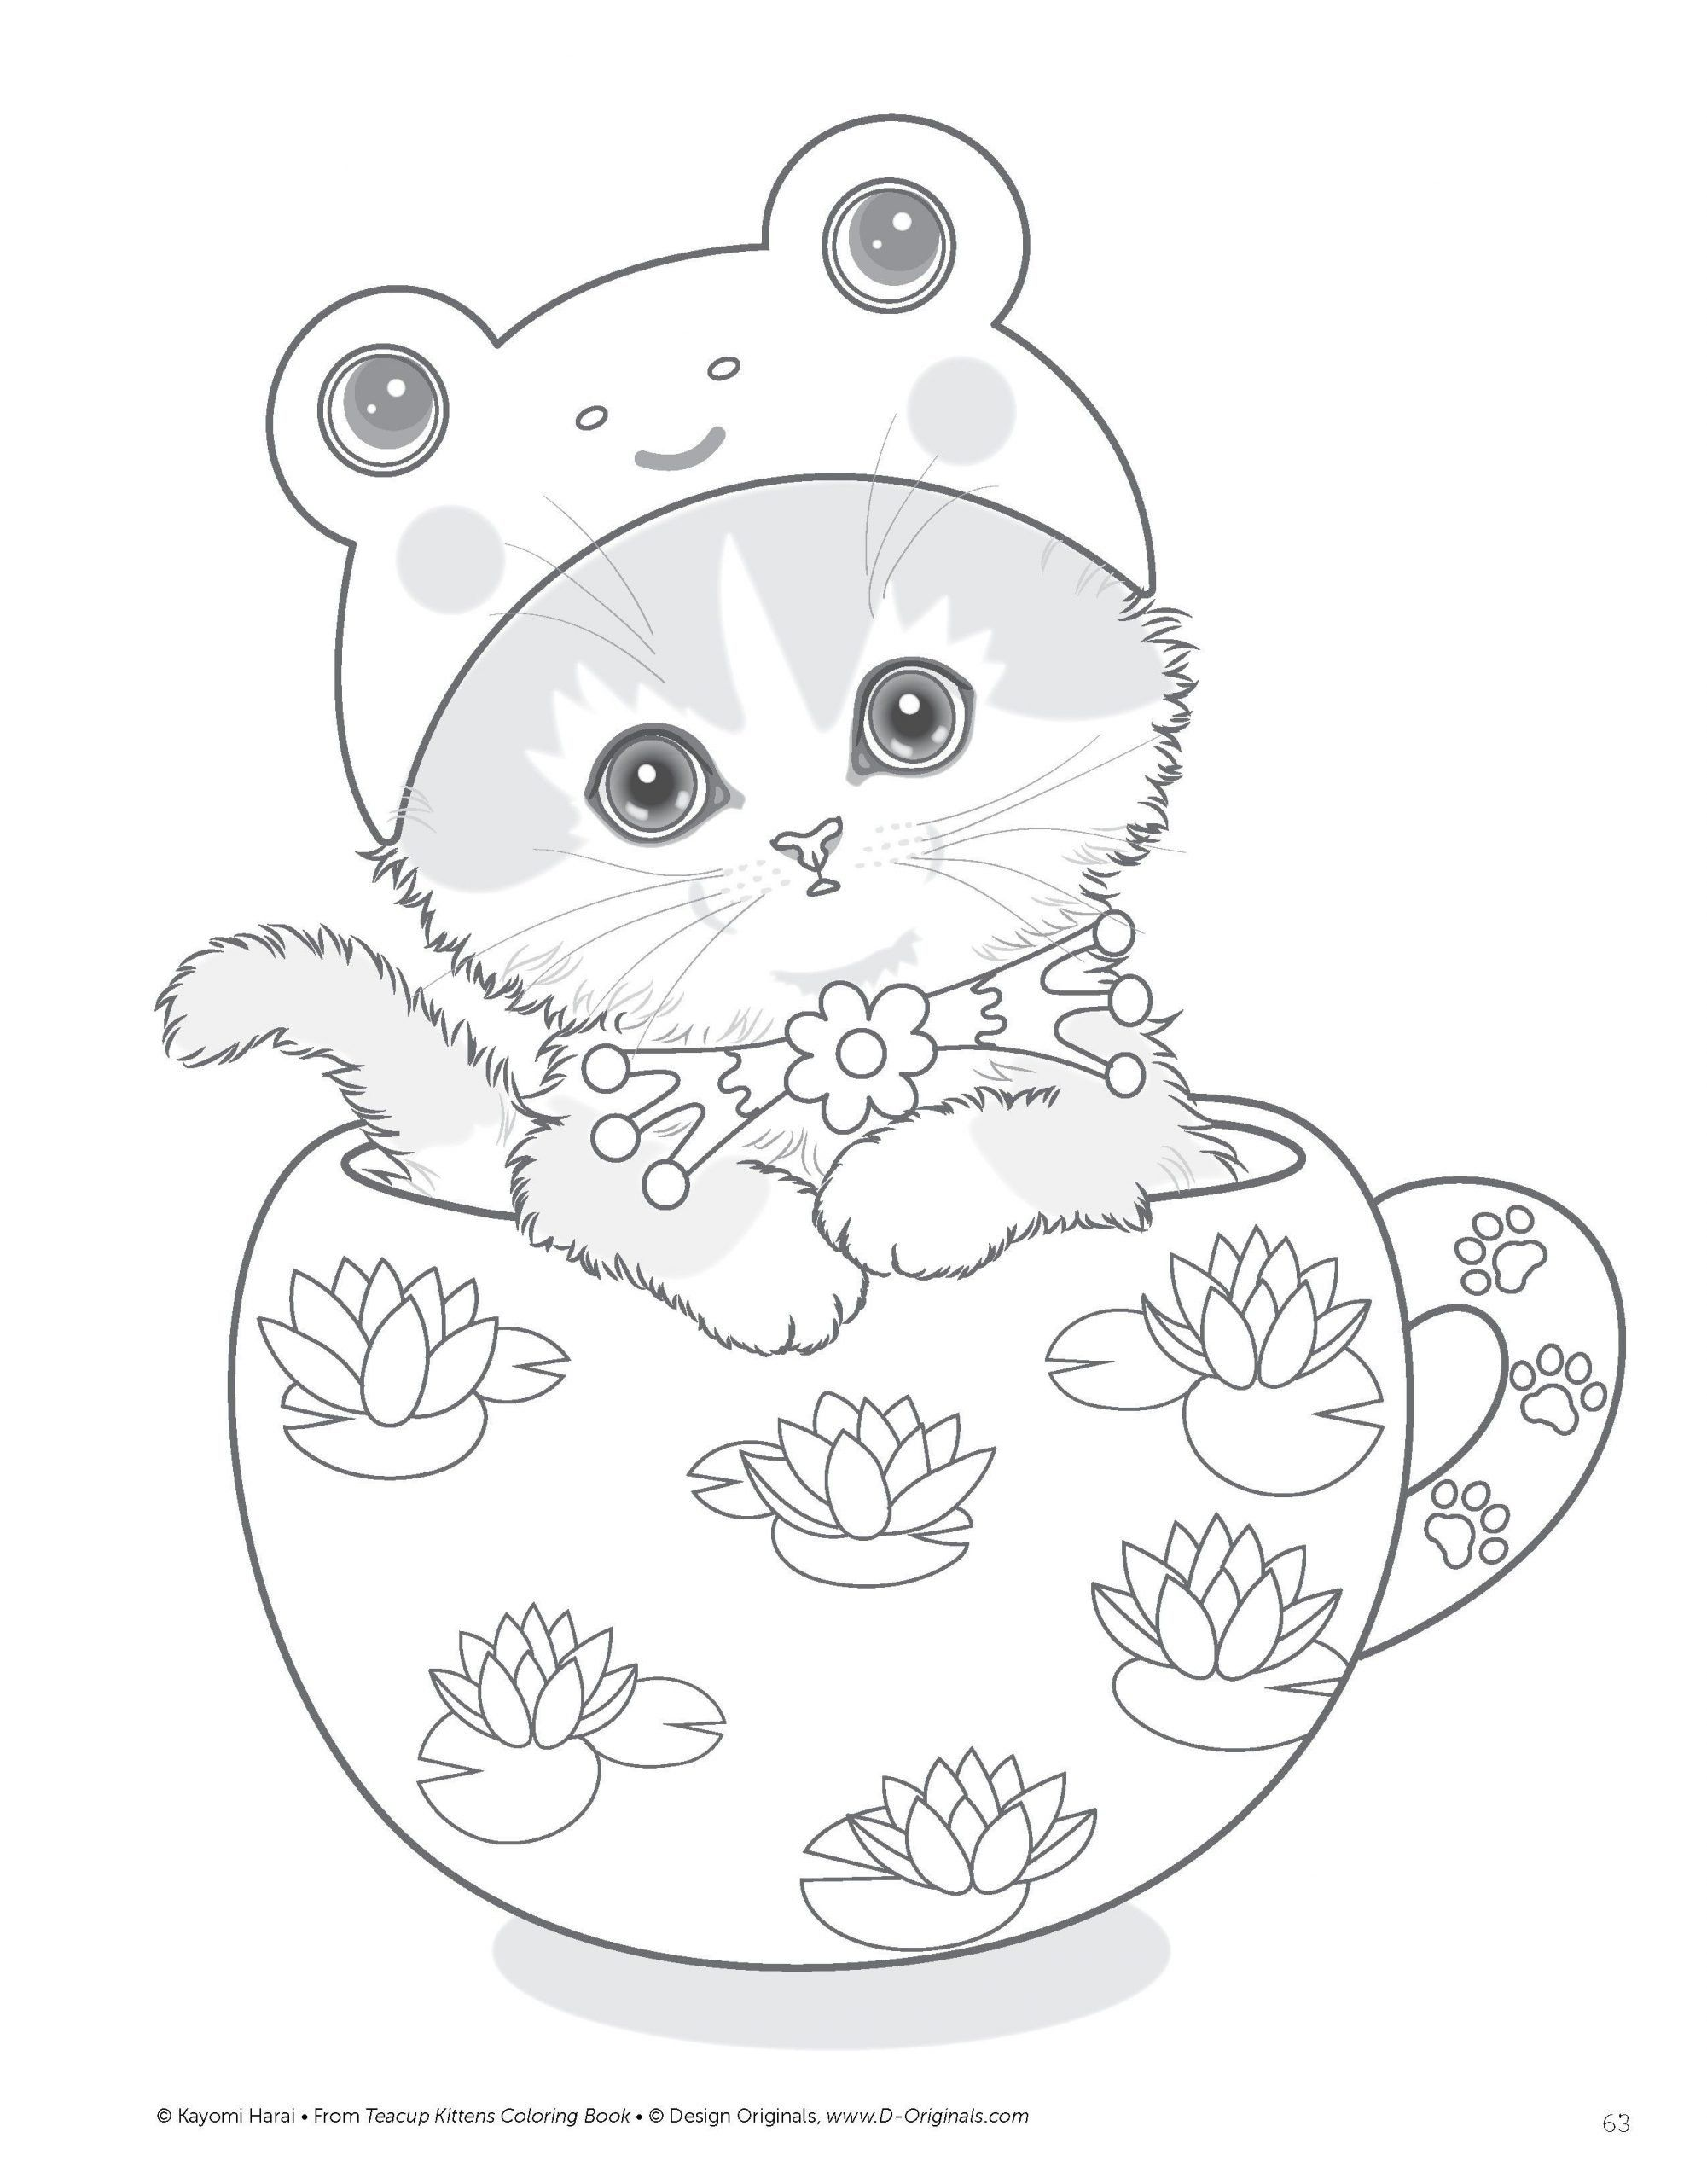 Coloring Pages Of Kittens Kitty Kitten Coloring Pages In 2020 Kitten Coloring Book Kittens Coloring Unicorn Coloring Pages